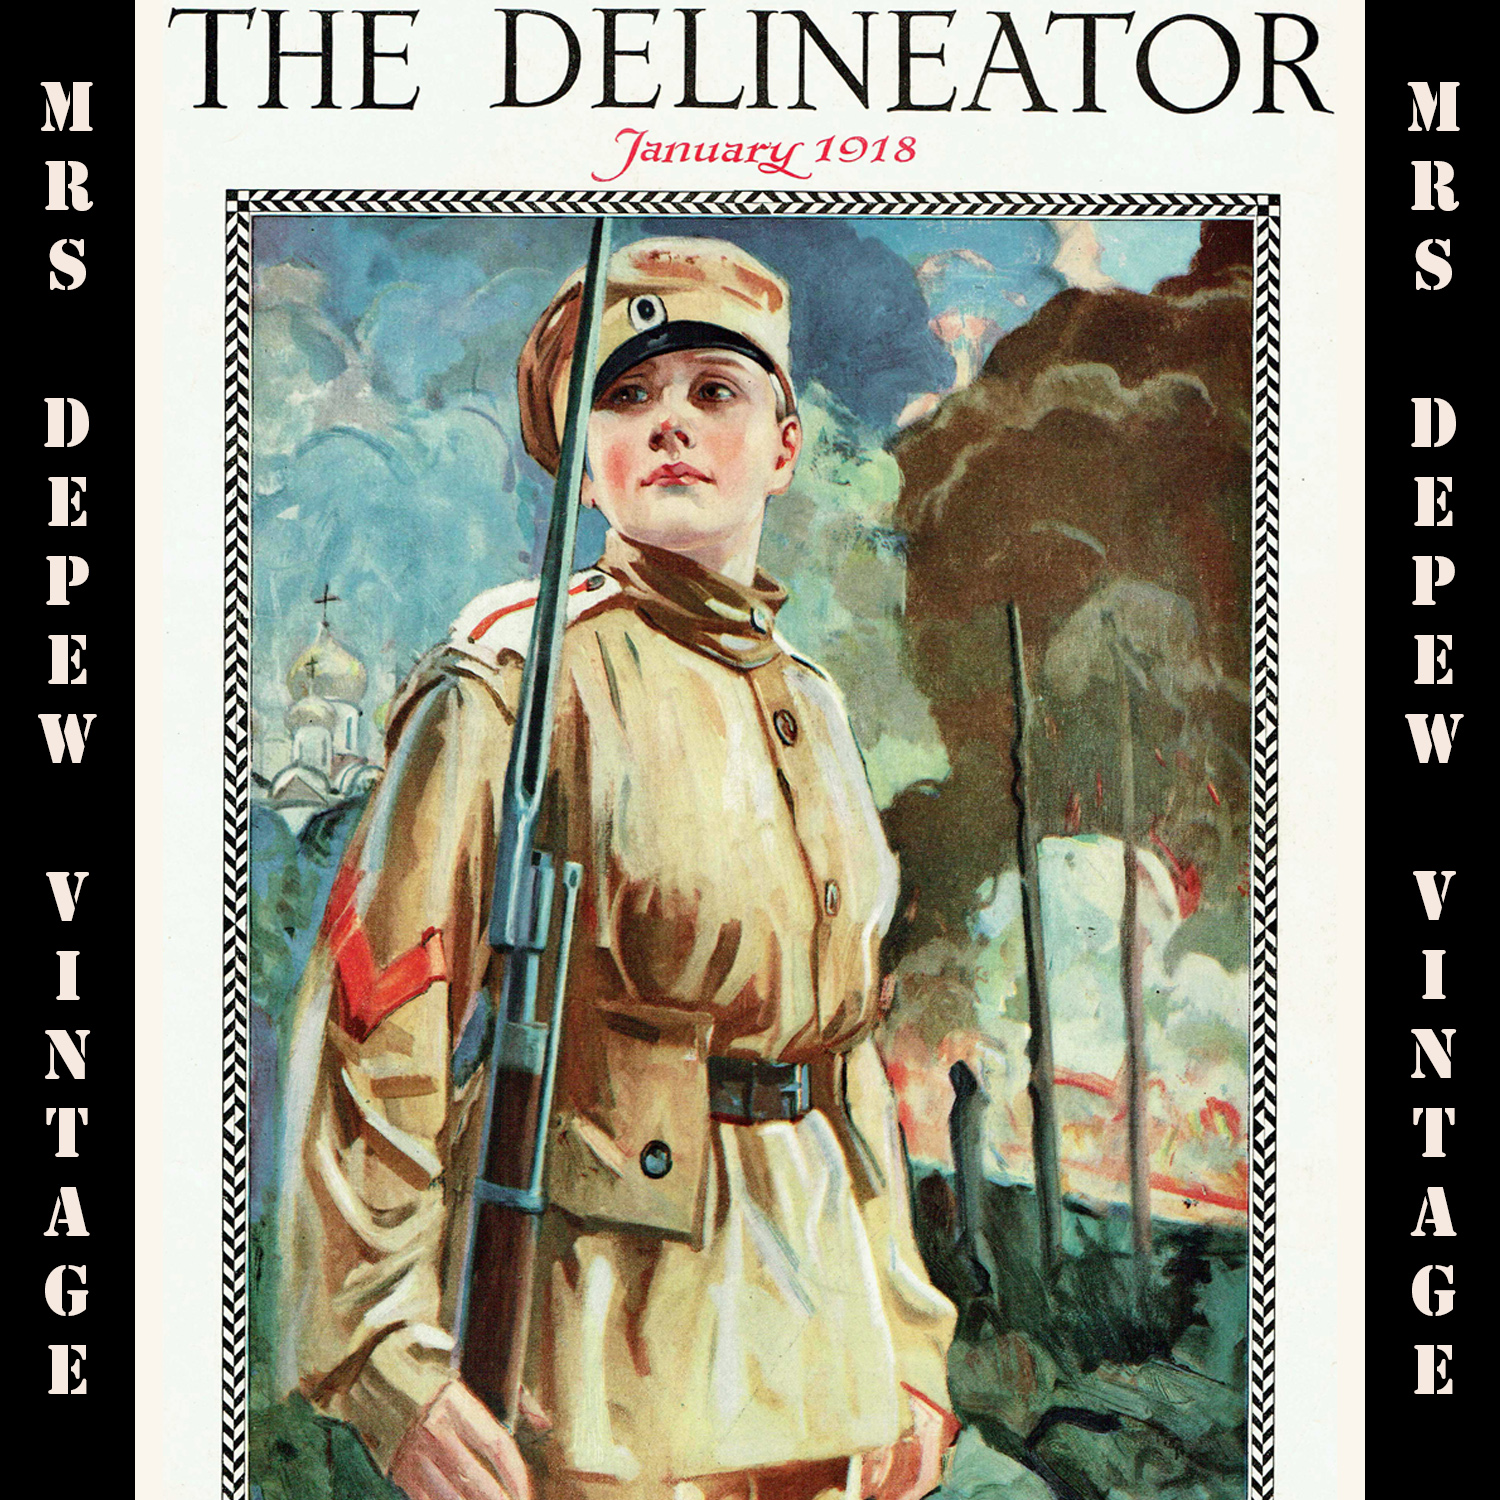 The Delineator January 1918